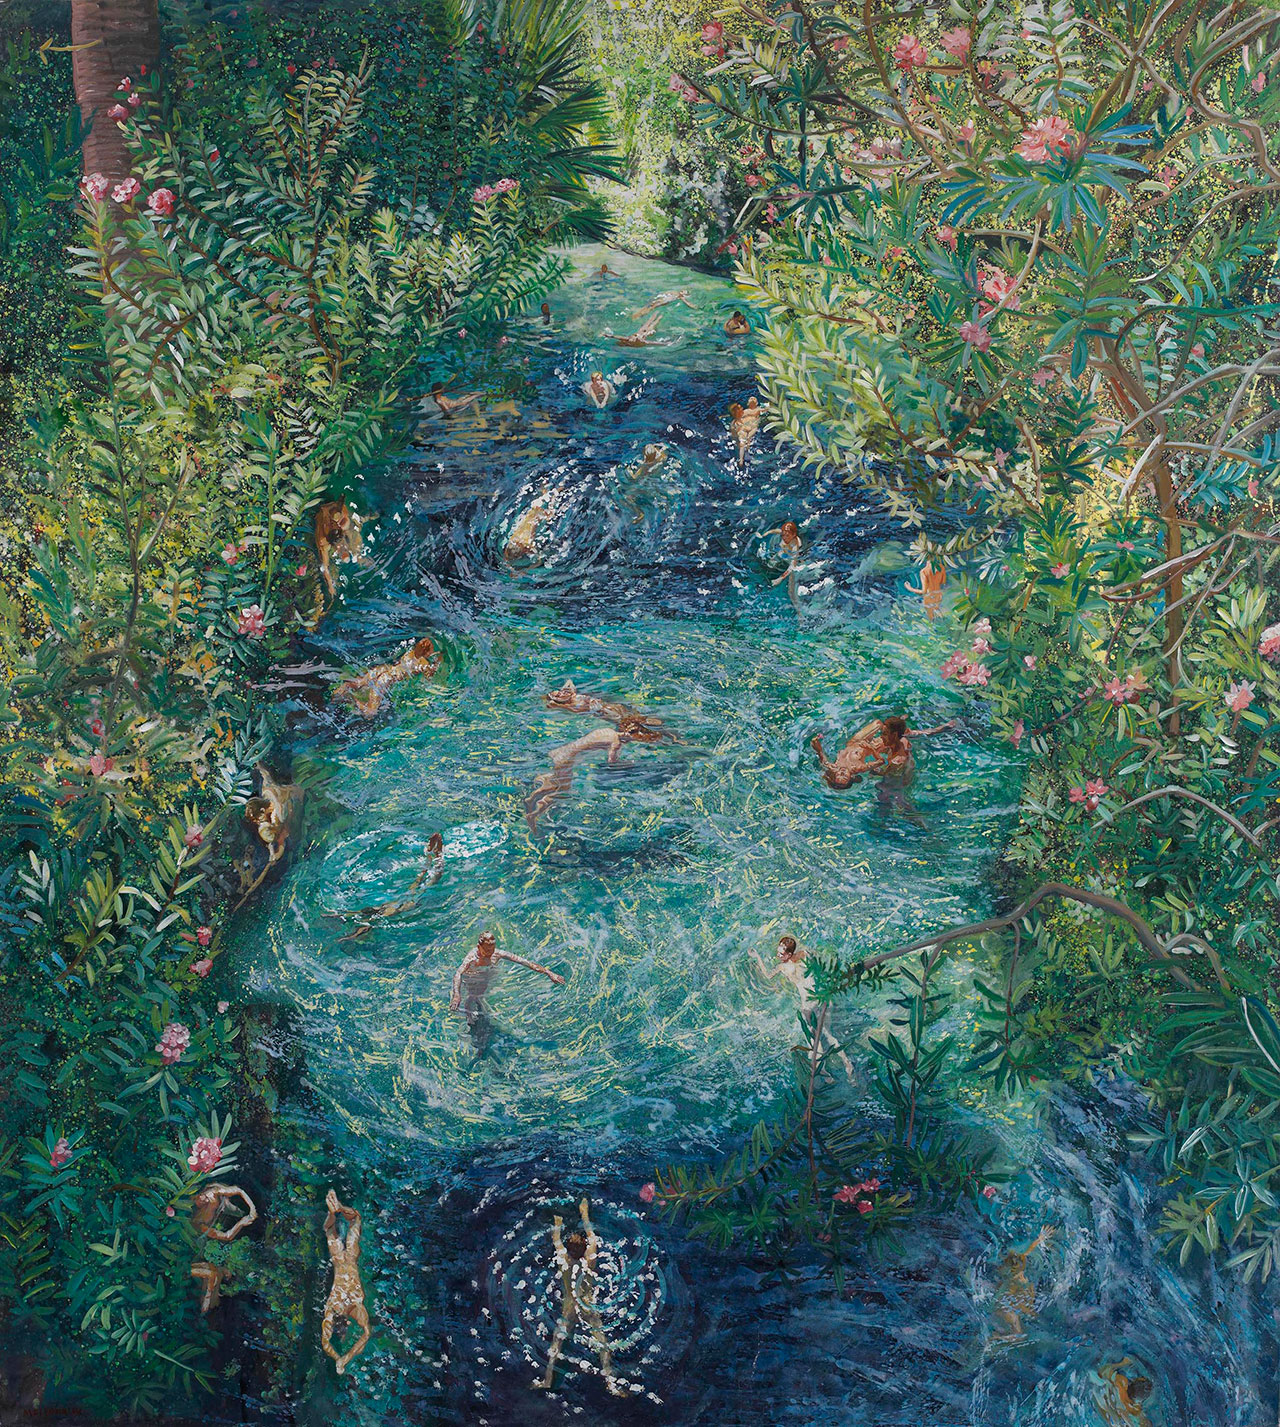 Maria Filopoulou, Ancient Pool, Ierapolis, 2009. Oil on canvas, 180 x 200cm.